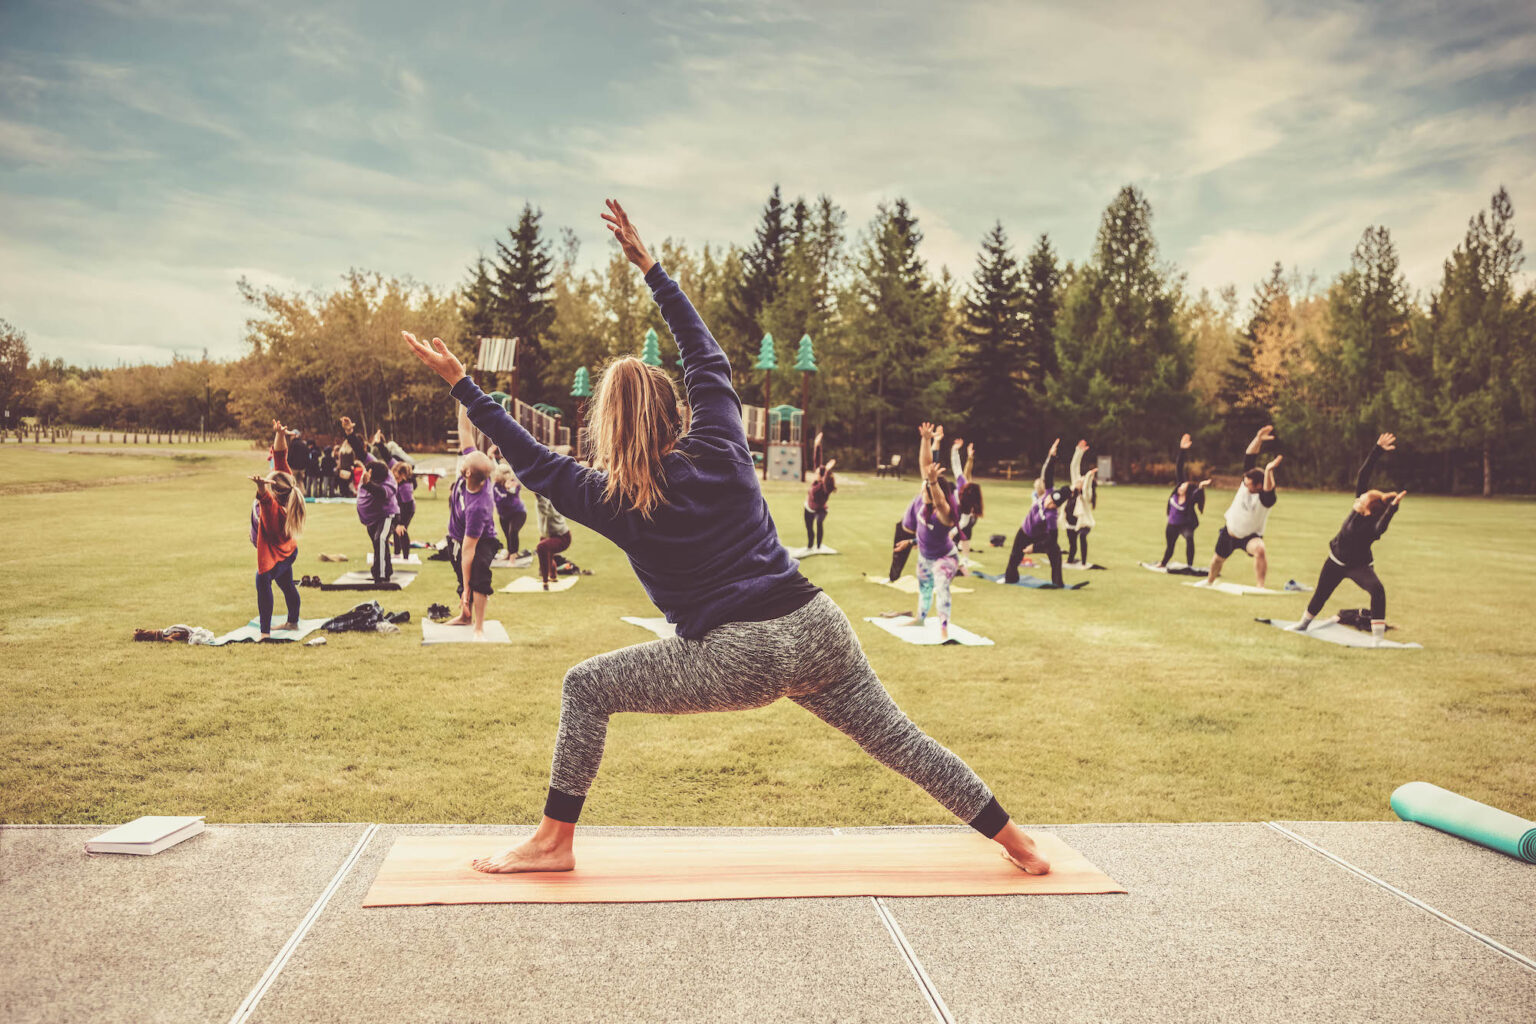 Yoga classes outdoors. Group of adults attending yoga classes in the park. Healthy lifestyle. Being healthy in body and mind